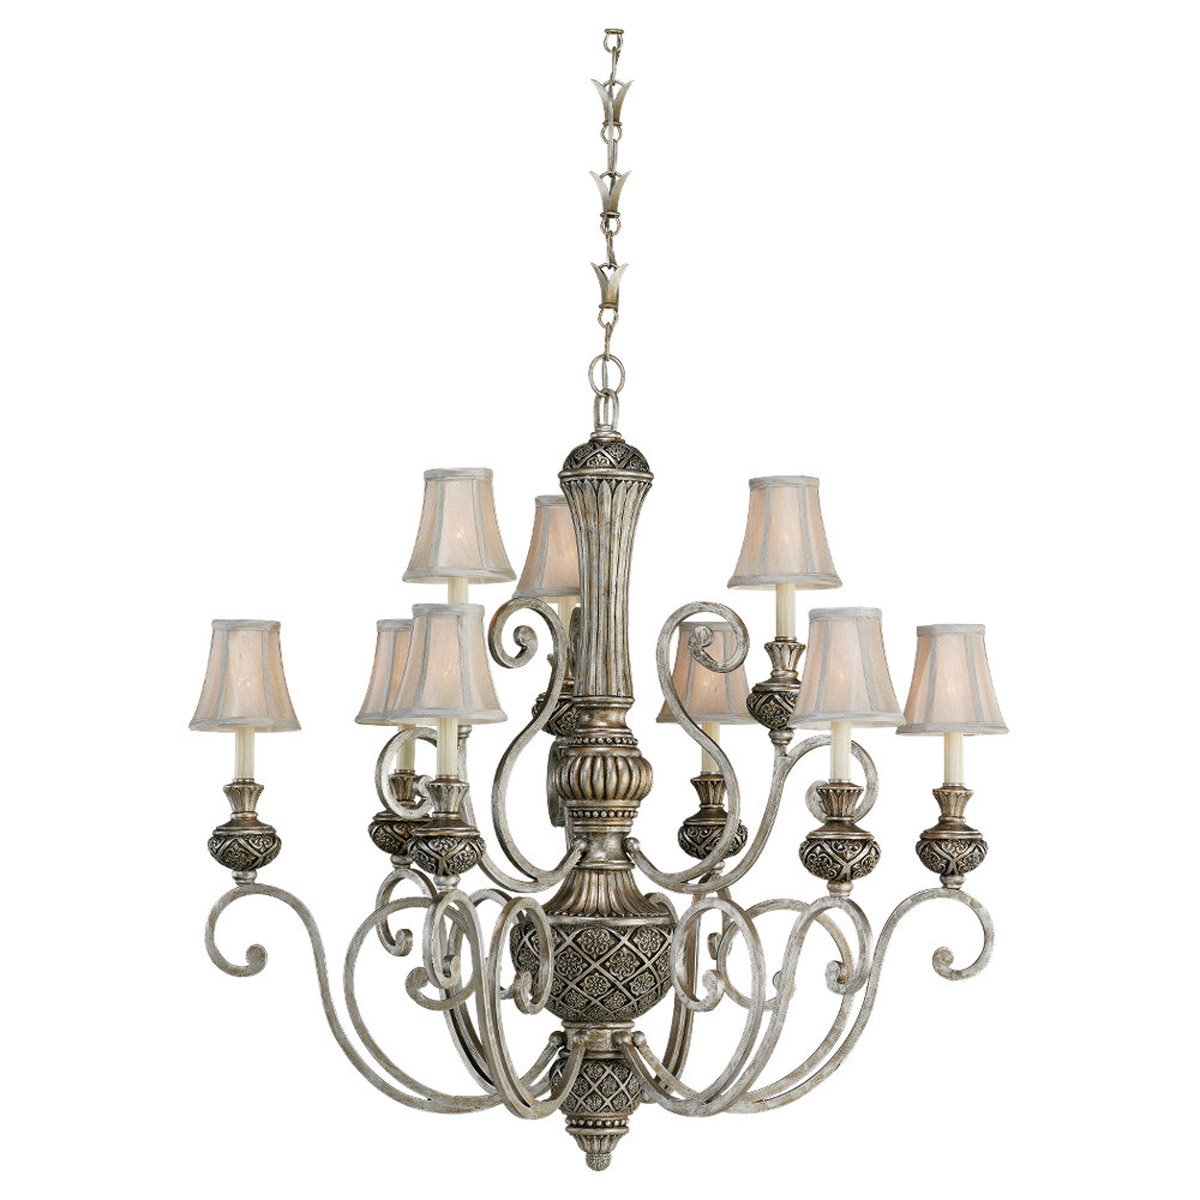 Sea Gull 31252-824 Highlands 9 Light 37 inch Palladium Chandelier Ceiling Light in Silver Silk Shantung Fabric photo